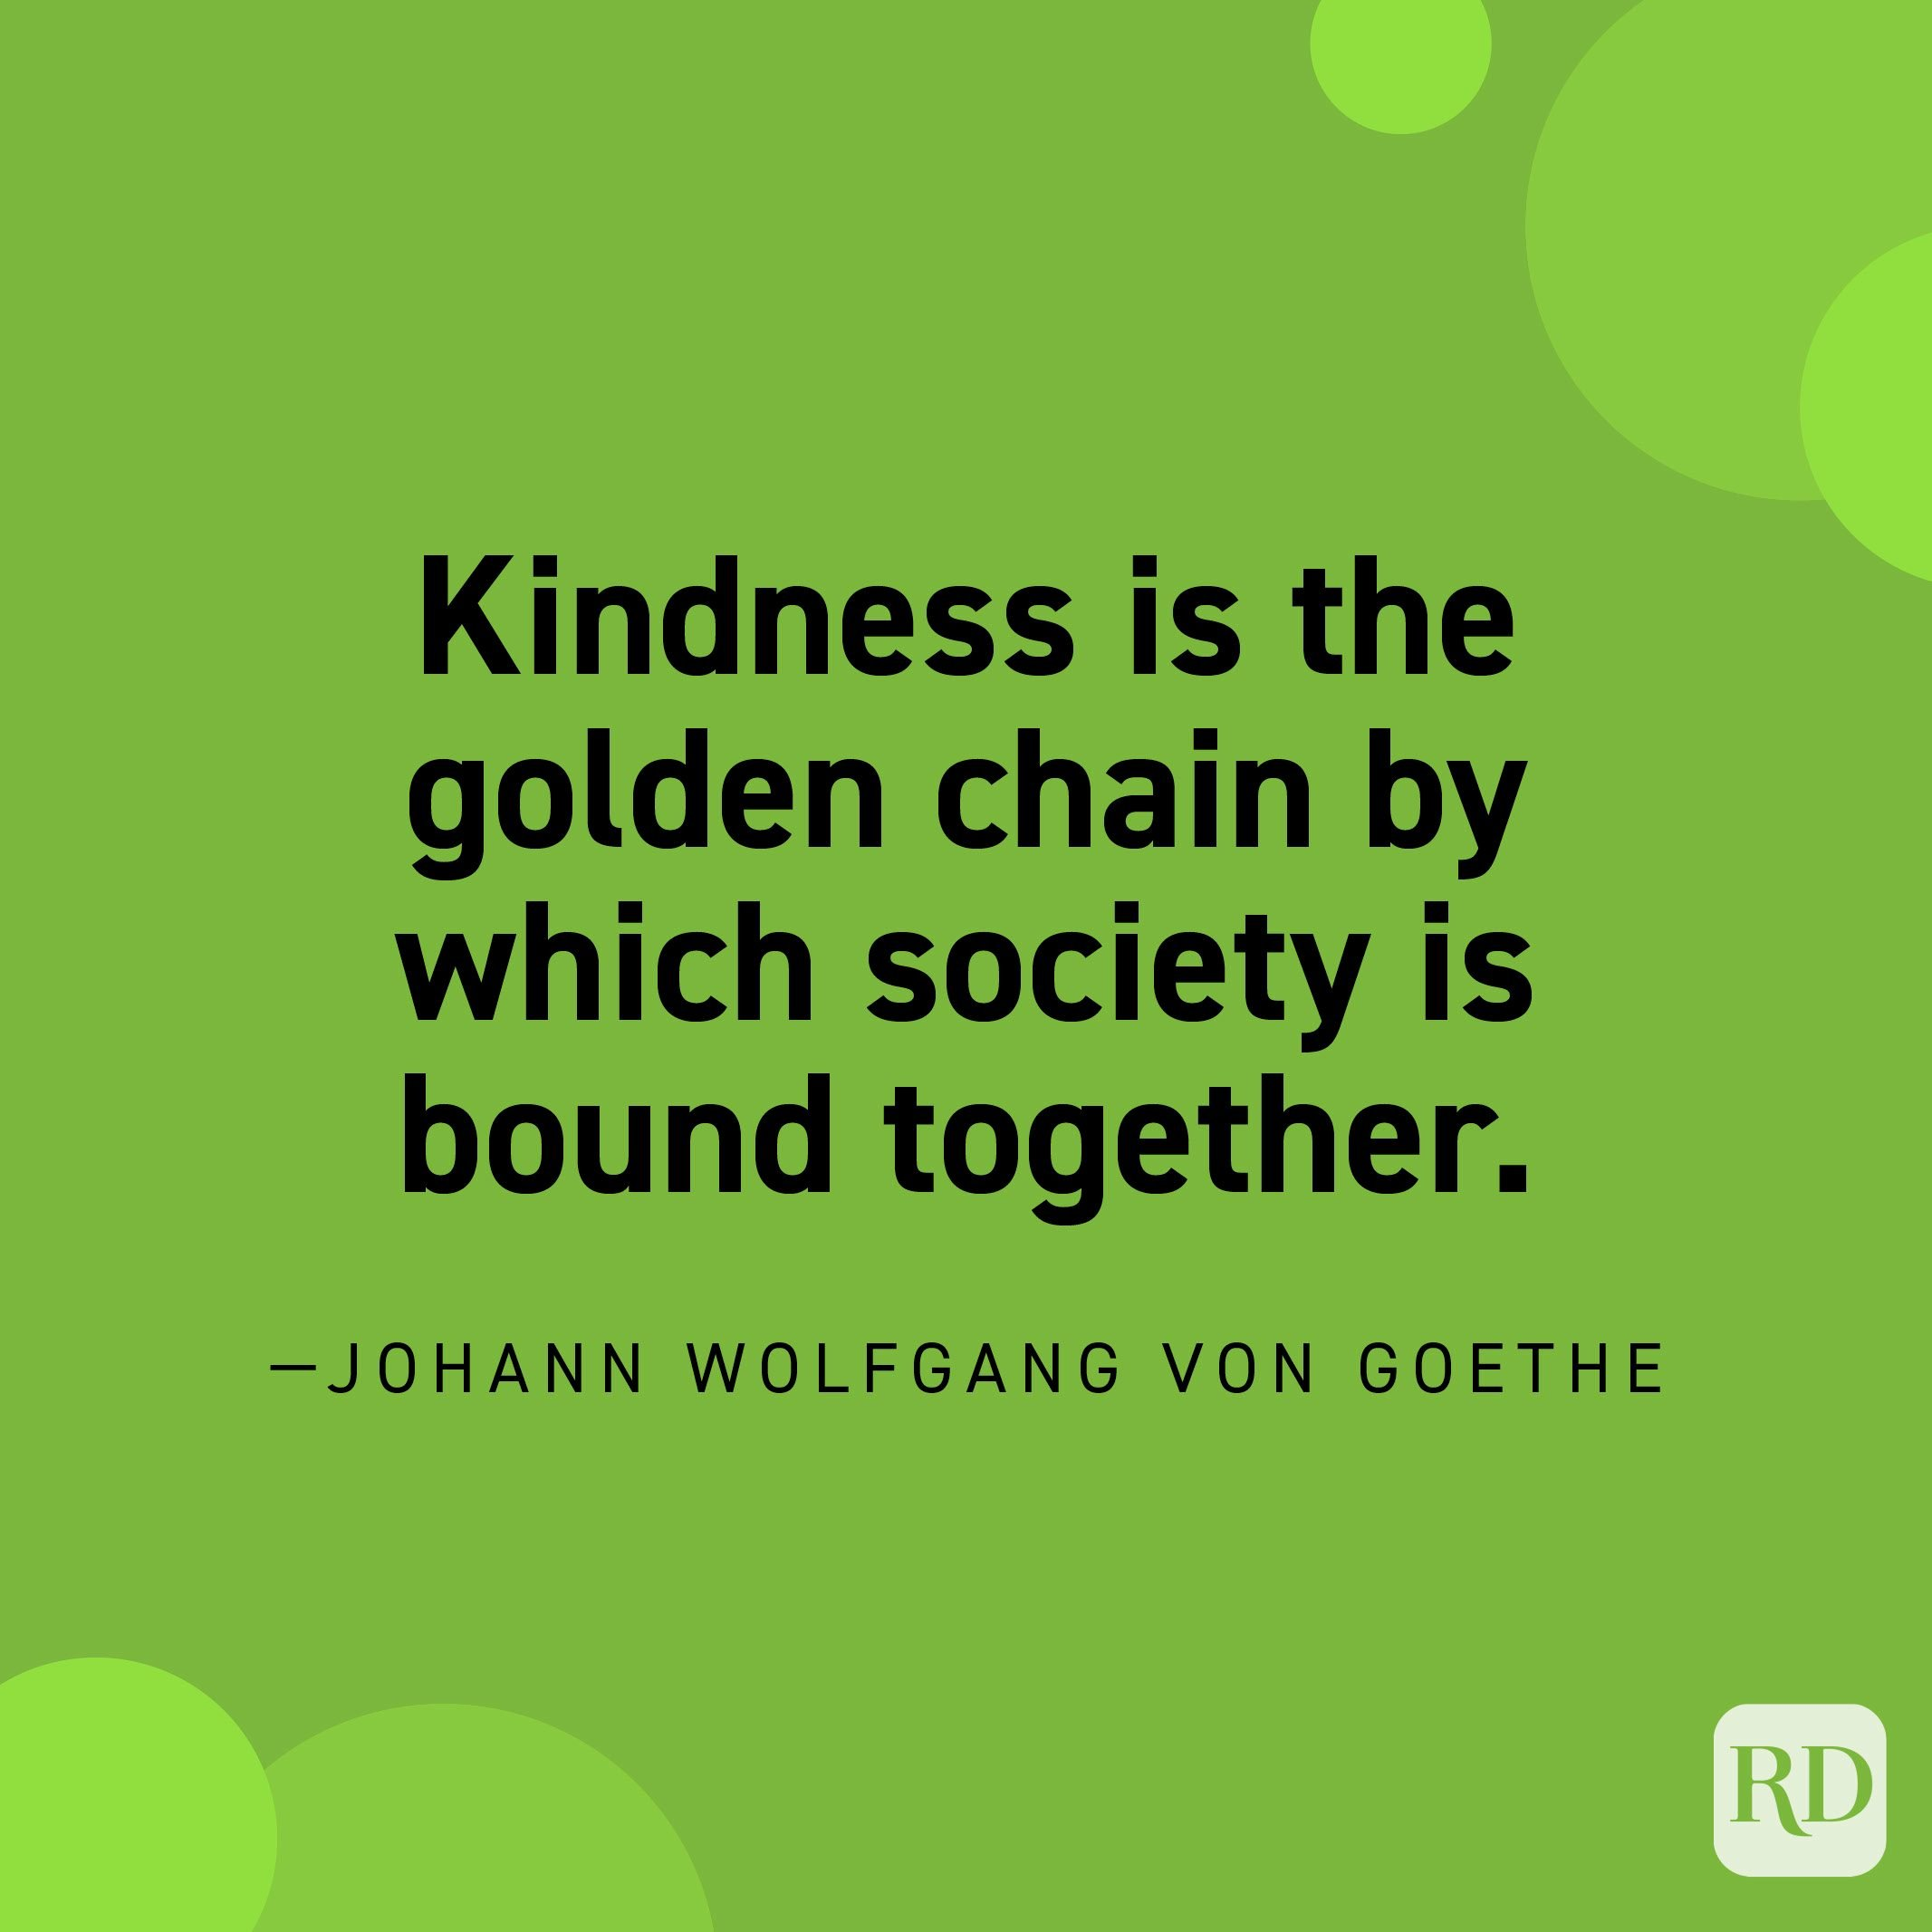 """""""Kindness is the golden chain by which society is bound together."""" —Johann Wolfgang von Goethe"""